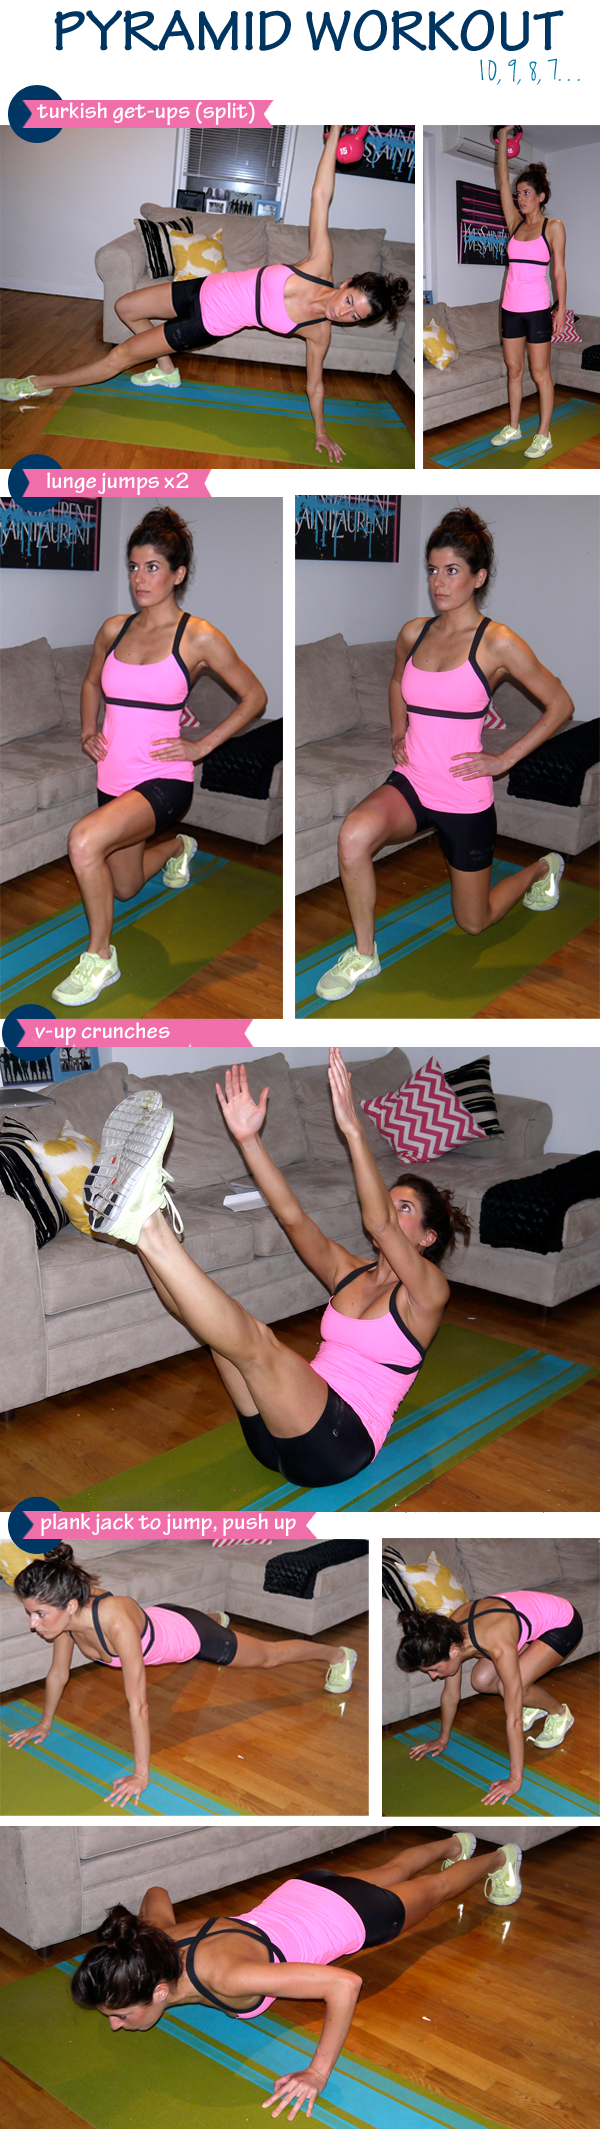 40-minute pyramid workout